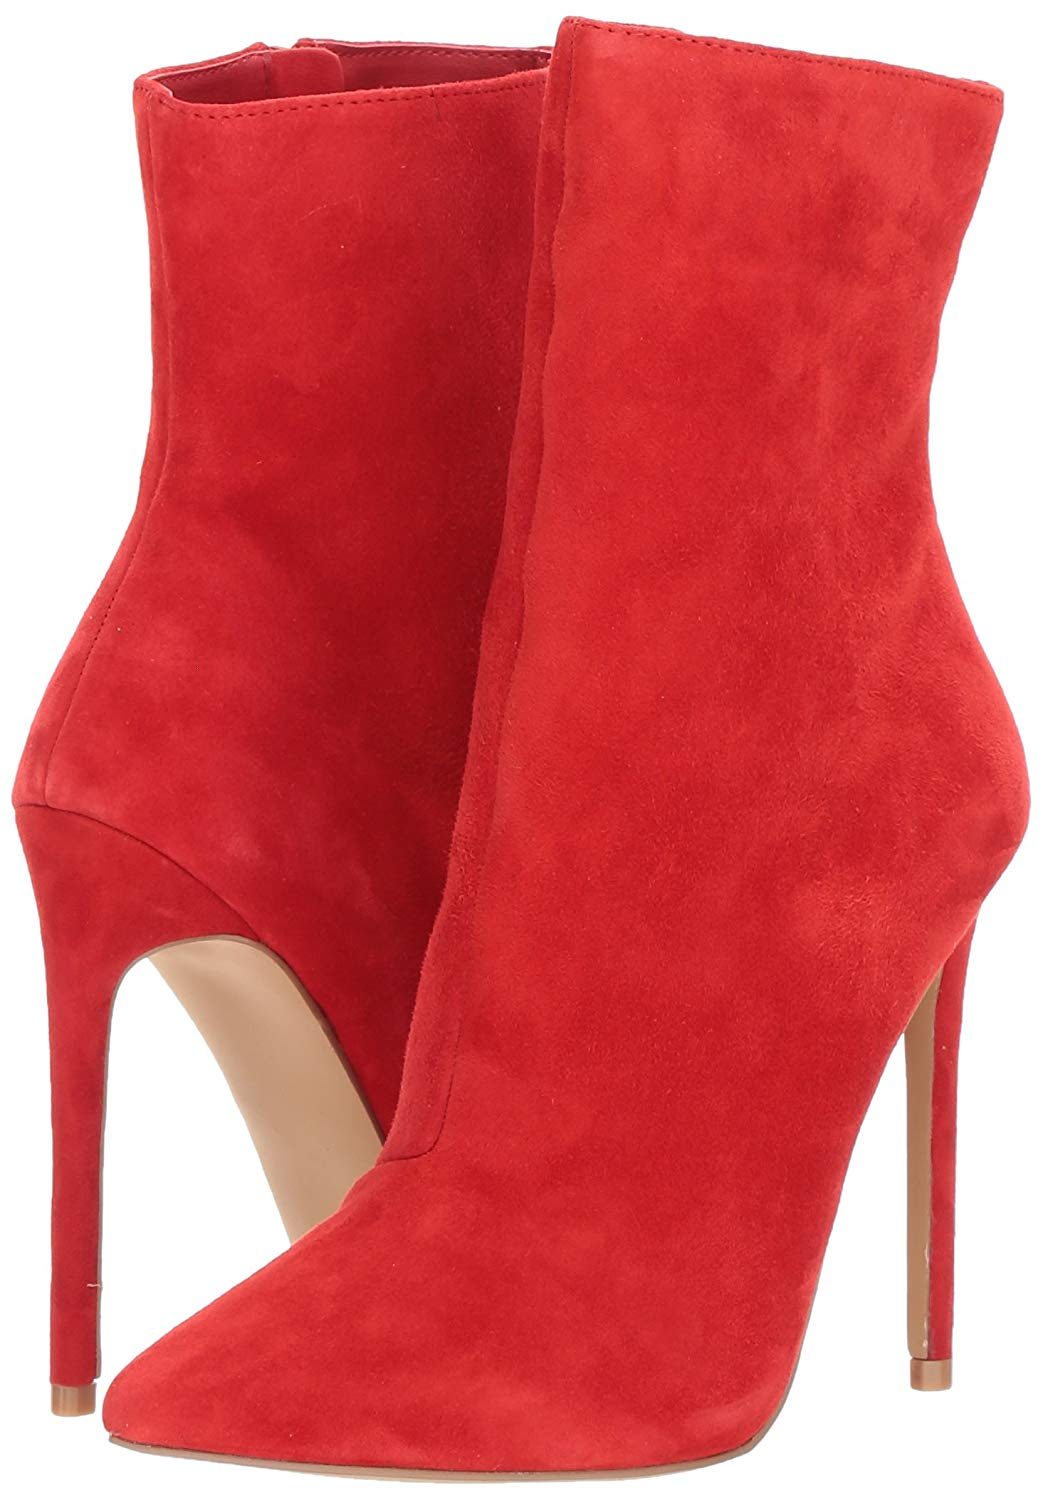 6fb1ca4a182 Details about Steve Madden Womens Wagner Stiletto-Heel Booties